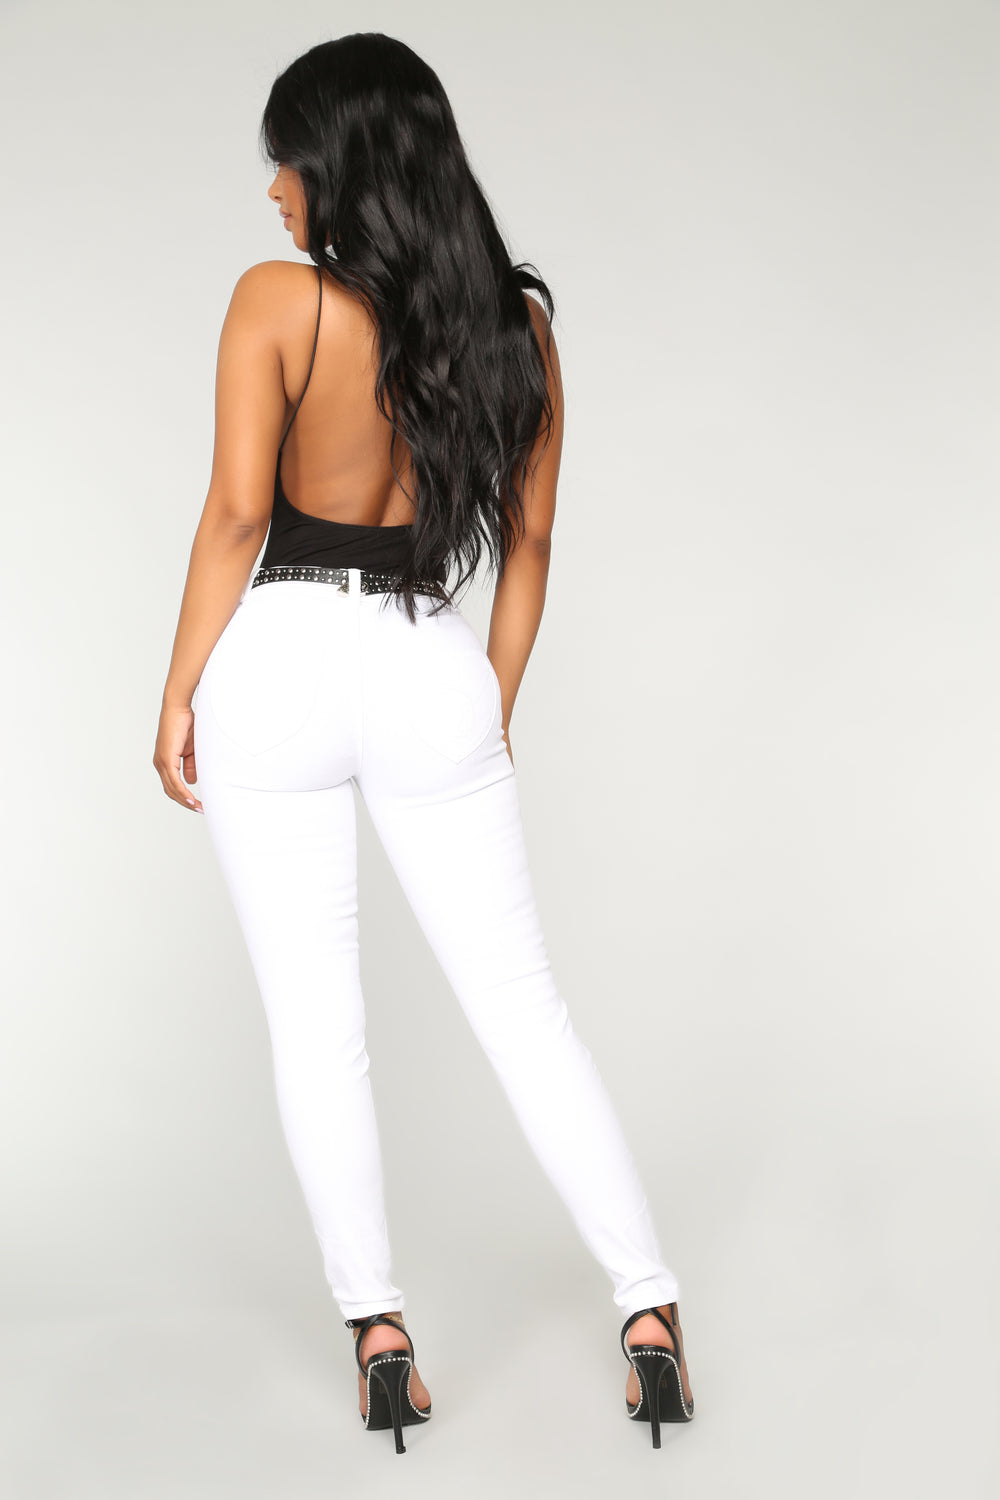 Weekend Getaway High Rise Jeans - White